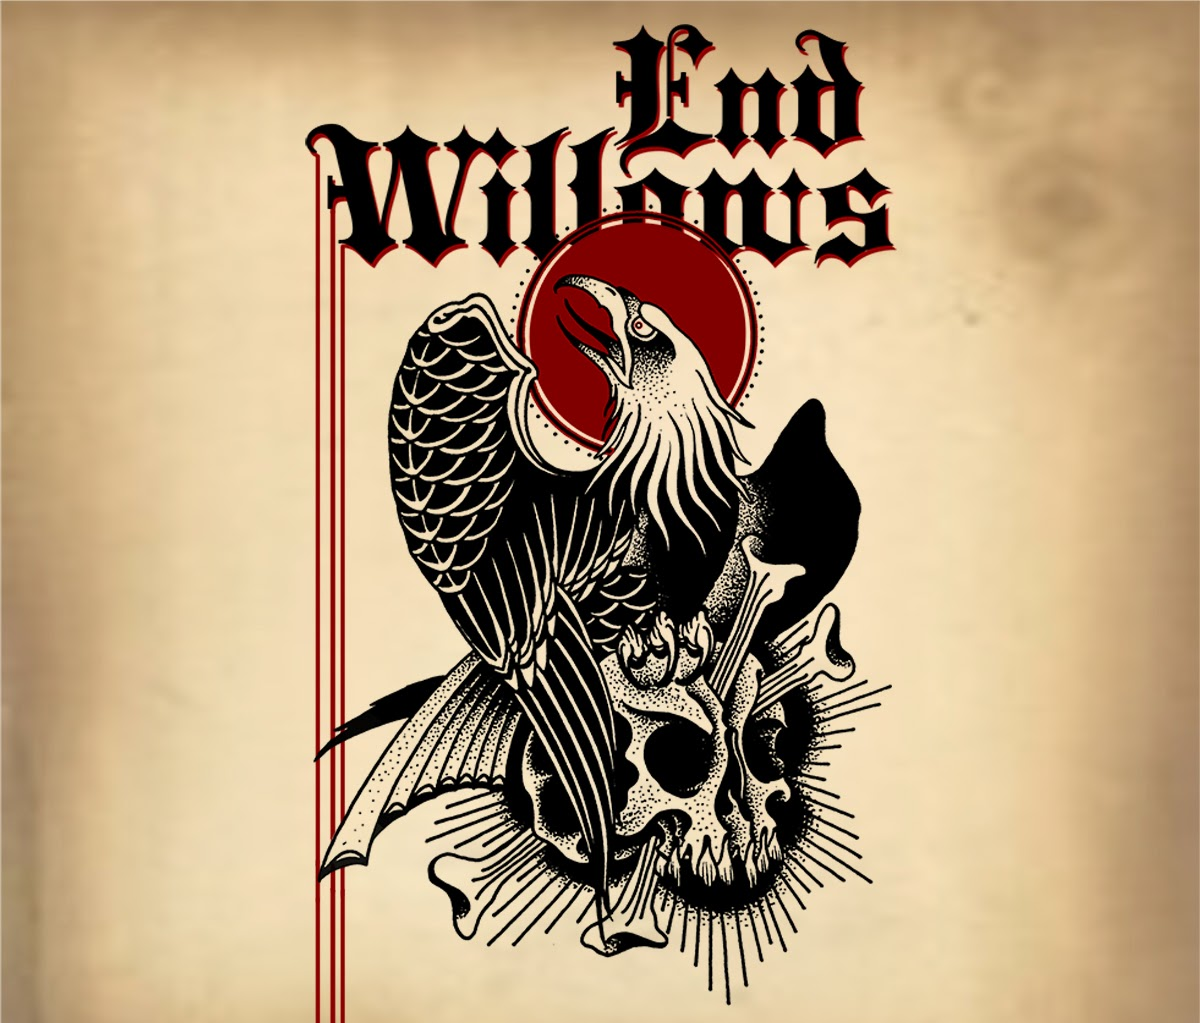 END WILLOWS TATTOOING